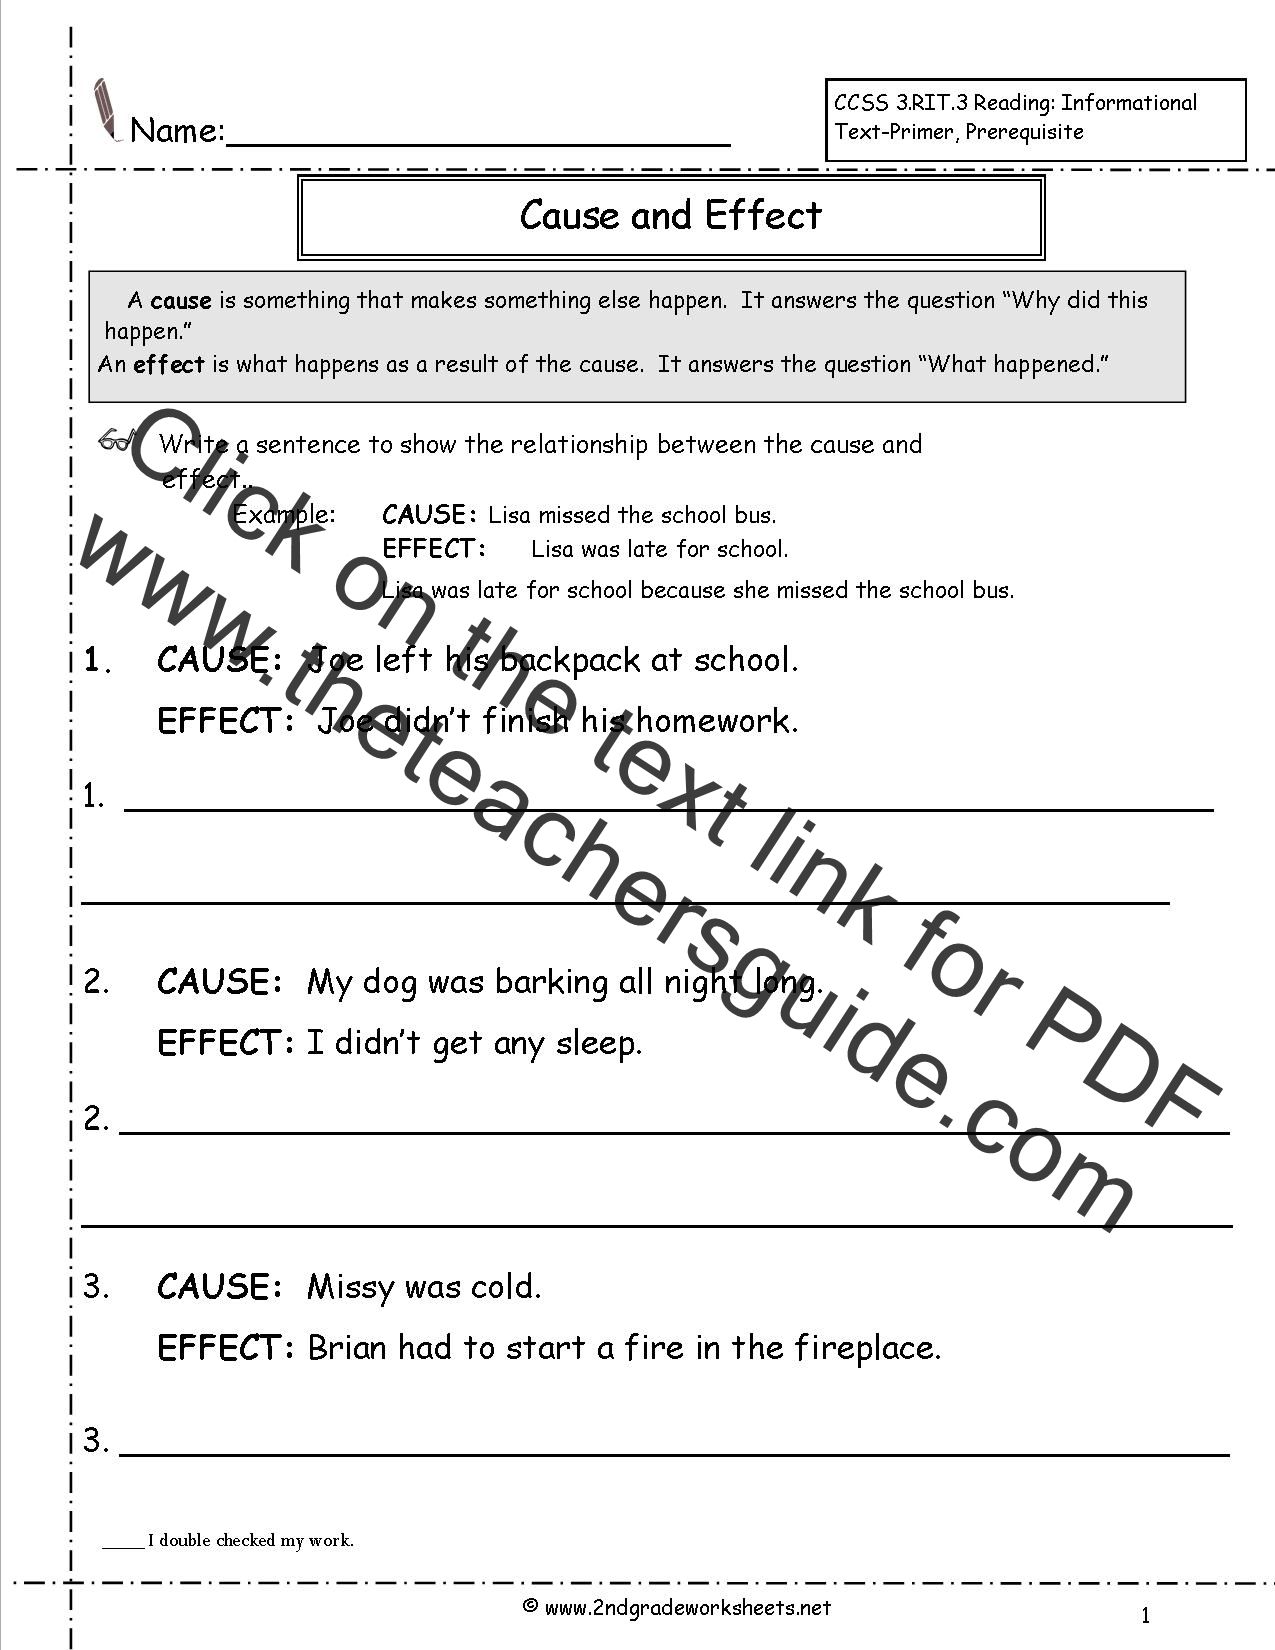 Worksheets Cause And Effect Worksheet 4th Grade reading worksheeets cause and effect worksheets